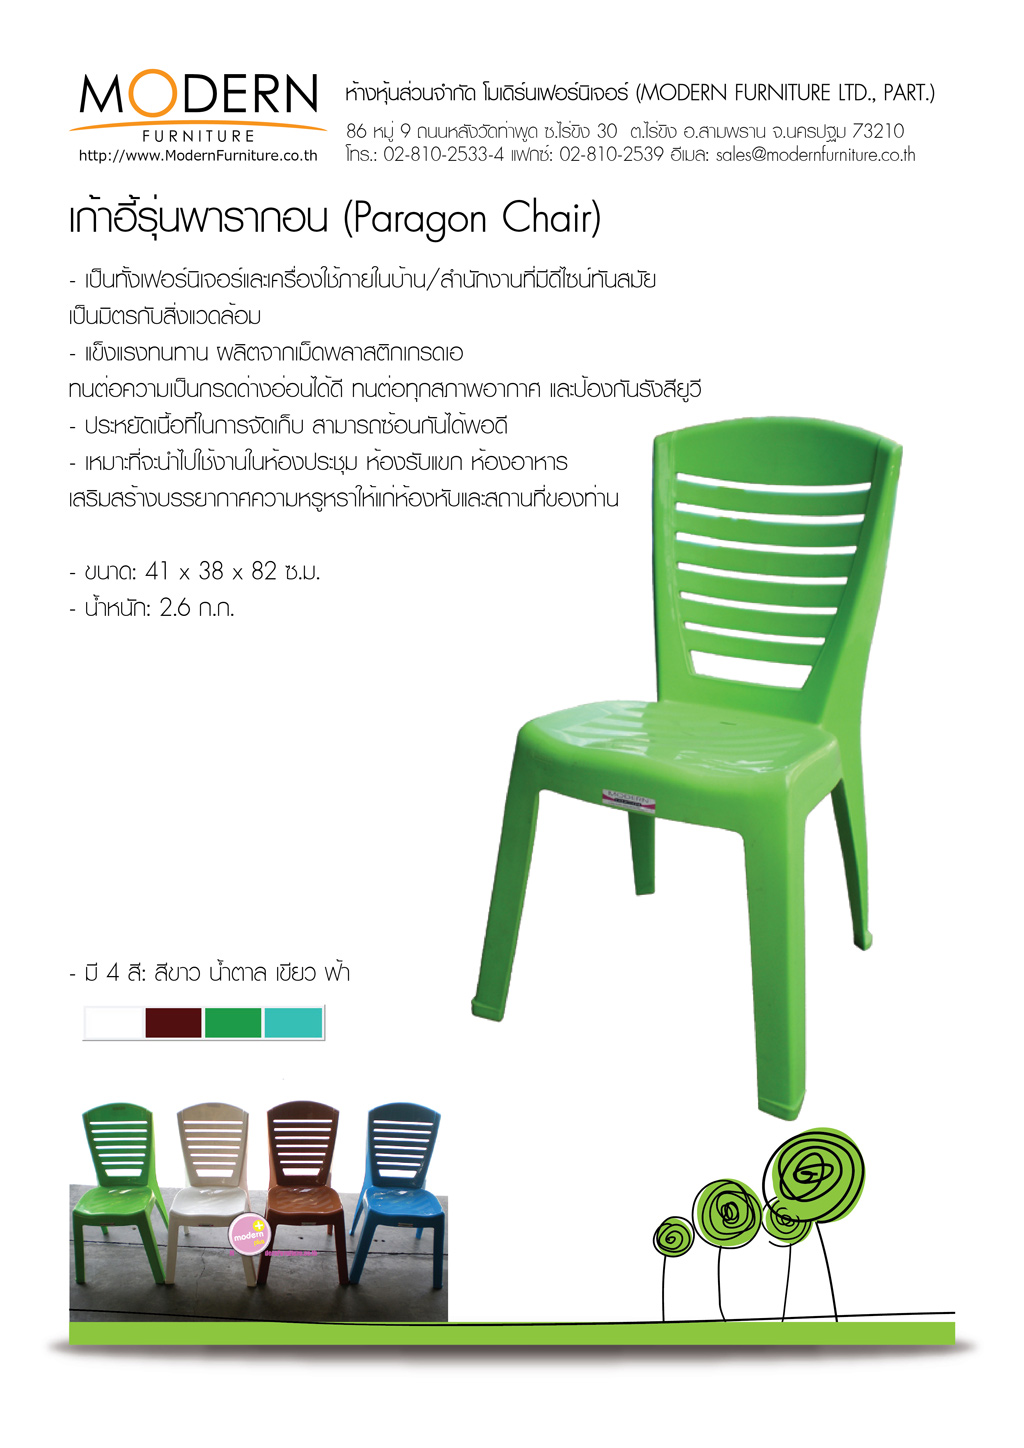 http://www.modernfurniture.co.th/img581/paragon.jpg